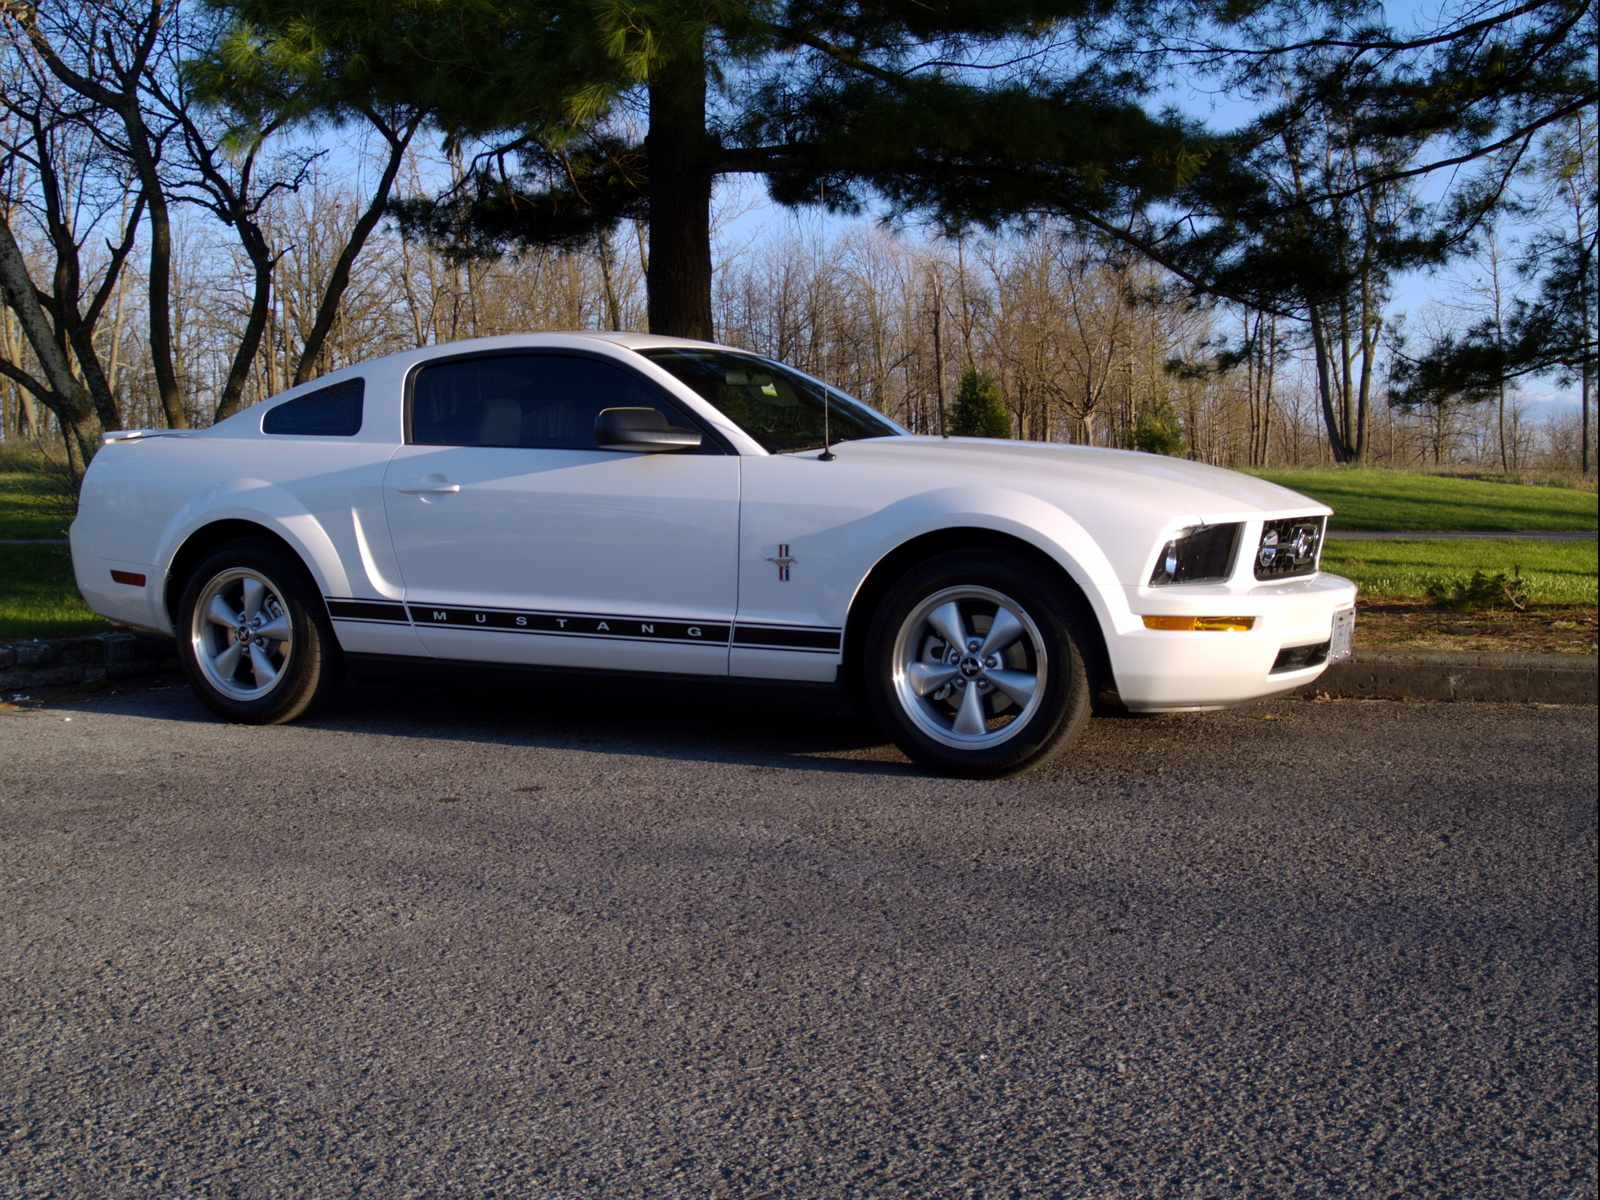 2005 Corvette For Sale >> 2007 Ford Mustang - Pictures - CarGurus